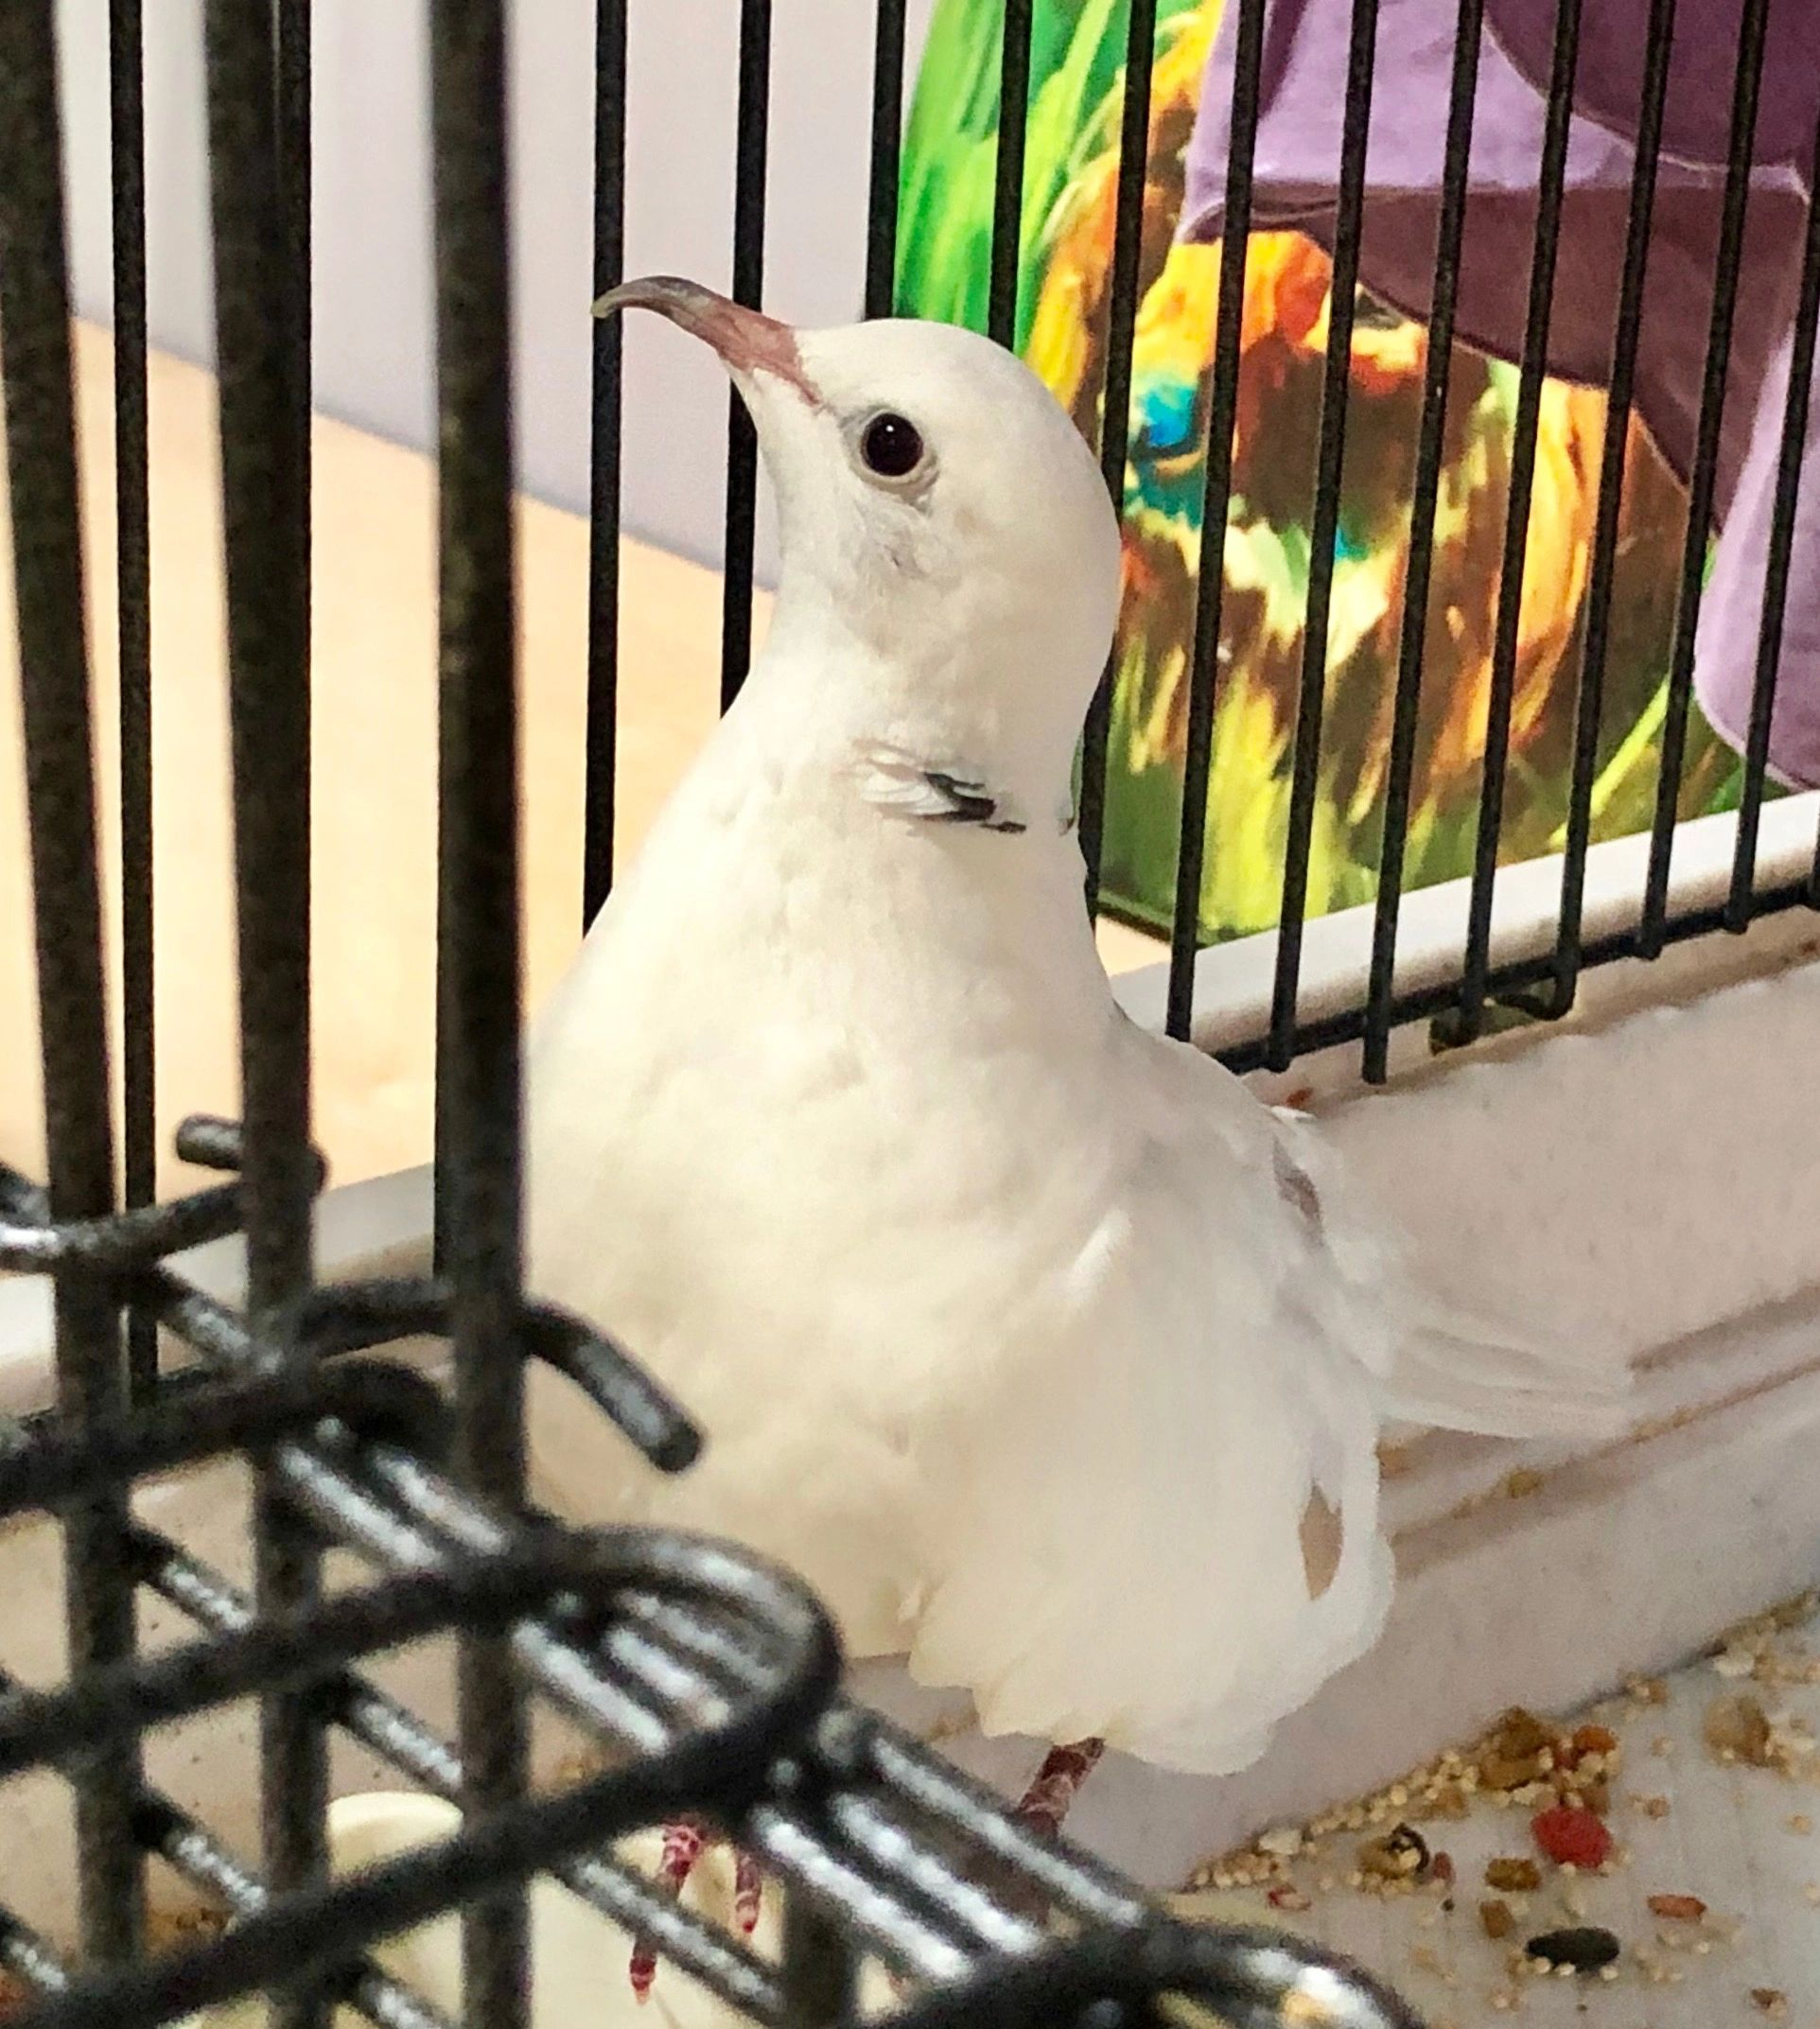 "{""blocks"":[{""key"":""6arbp"",""text"":""This is \""Morning Glory\"" an 18 year old Dove who was surrendered due to their owner's deployment. You can adopt this sweet bird for only a $10 donation at the Capital Area Humane Society. Call  517-626-6060 or go to  http://cahs-lansing.org/ for more details."",""type"":""unstyled"",""depth"":0,""inlineStyleRanges"":[],""entityRanges"":[{""offset"":216,""length"":24,""key"":0}],""data"":{}}],""entityMap"":{""0"":{""type"":""LINK"",""mutability"":""MUTABLE"",""data"":{""href"":""http://cahs-lansing.org/"",""url"":""http://cahs-lansing.org/""}}}}"